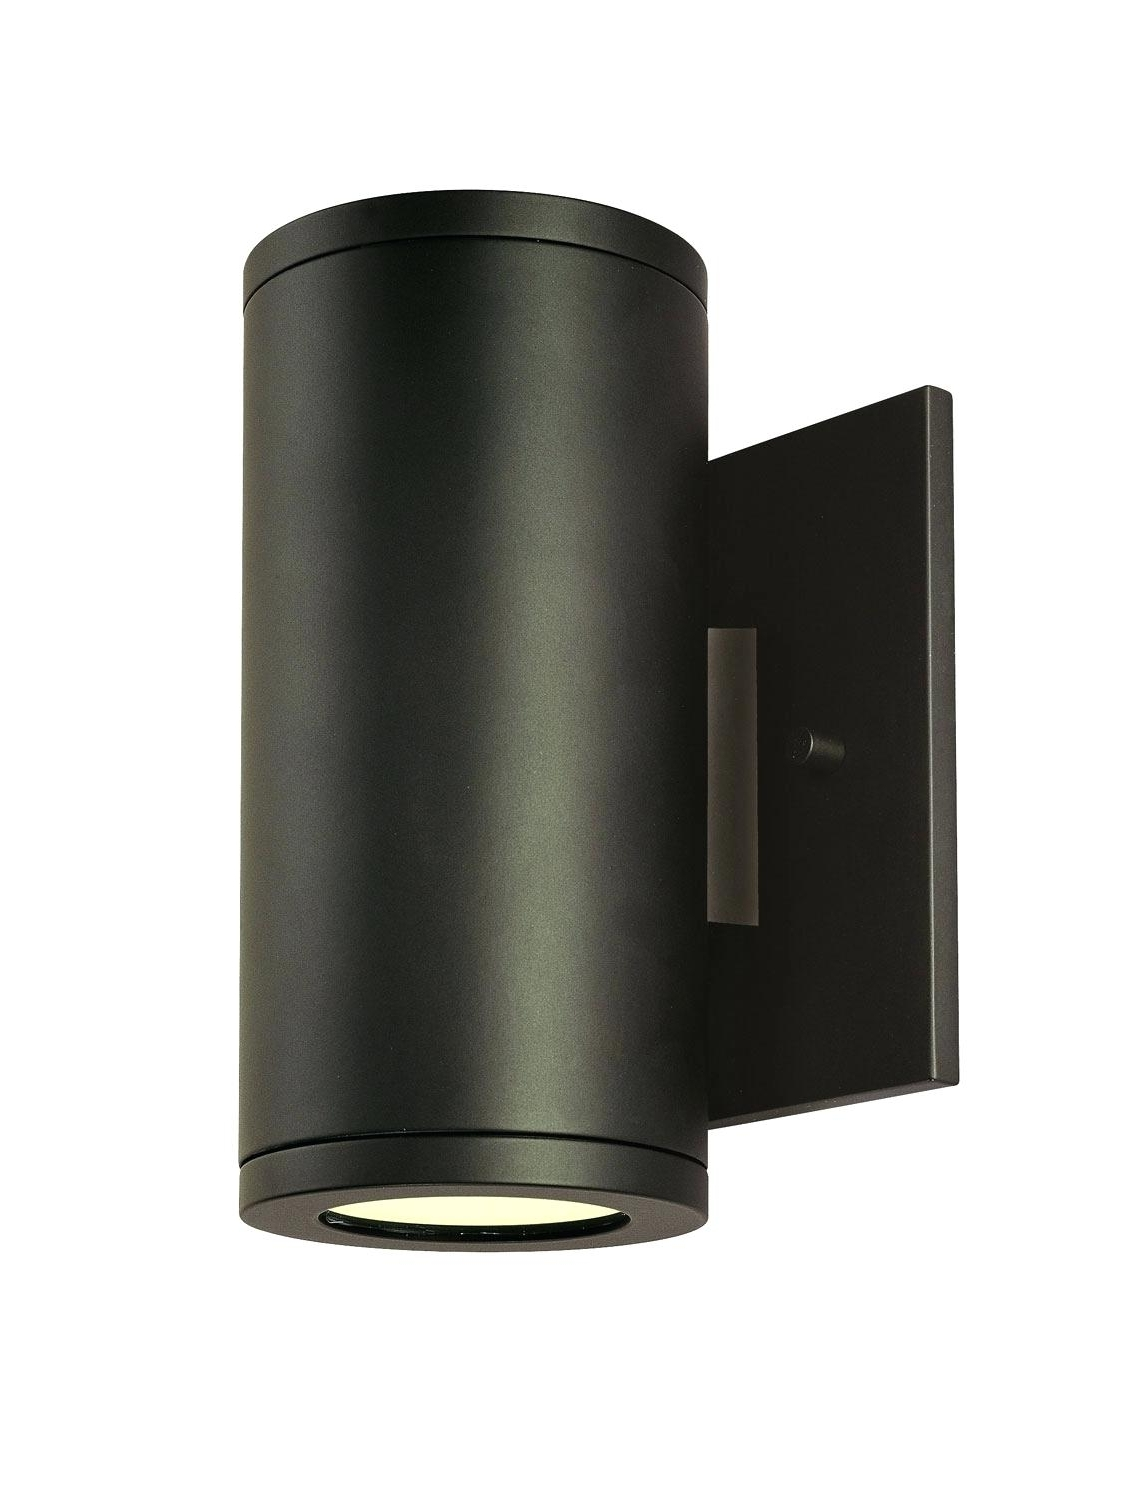 Popular Outdoor Wall Lamp S Lamps Home Depot Lights Amazon Motion Sensor Throughout Outdoor Wall Lighting At Amazon (View 3 of 20)